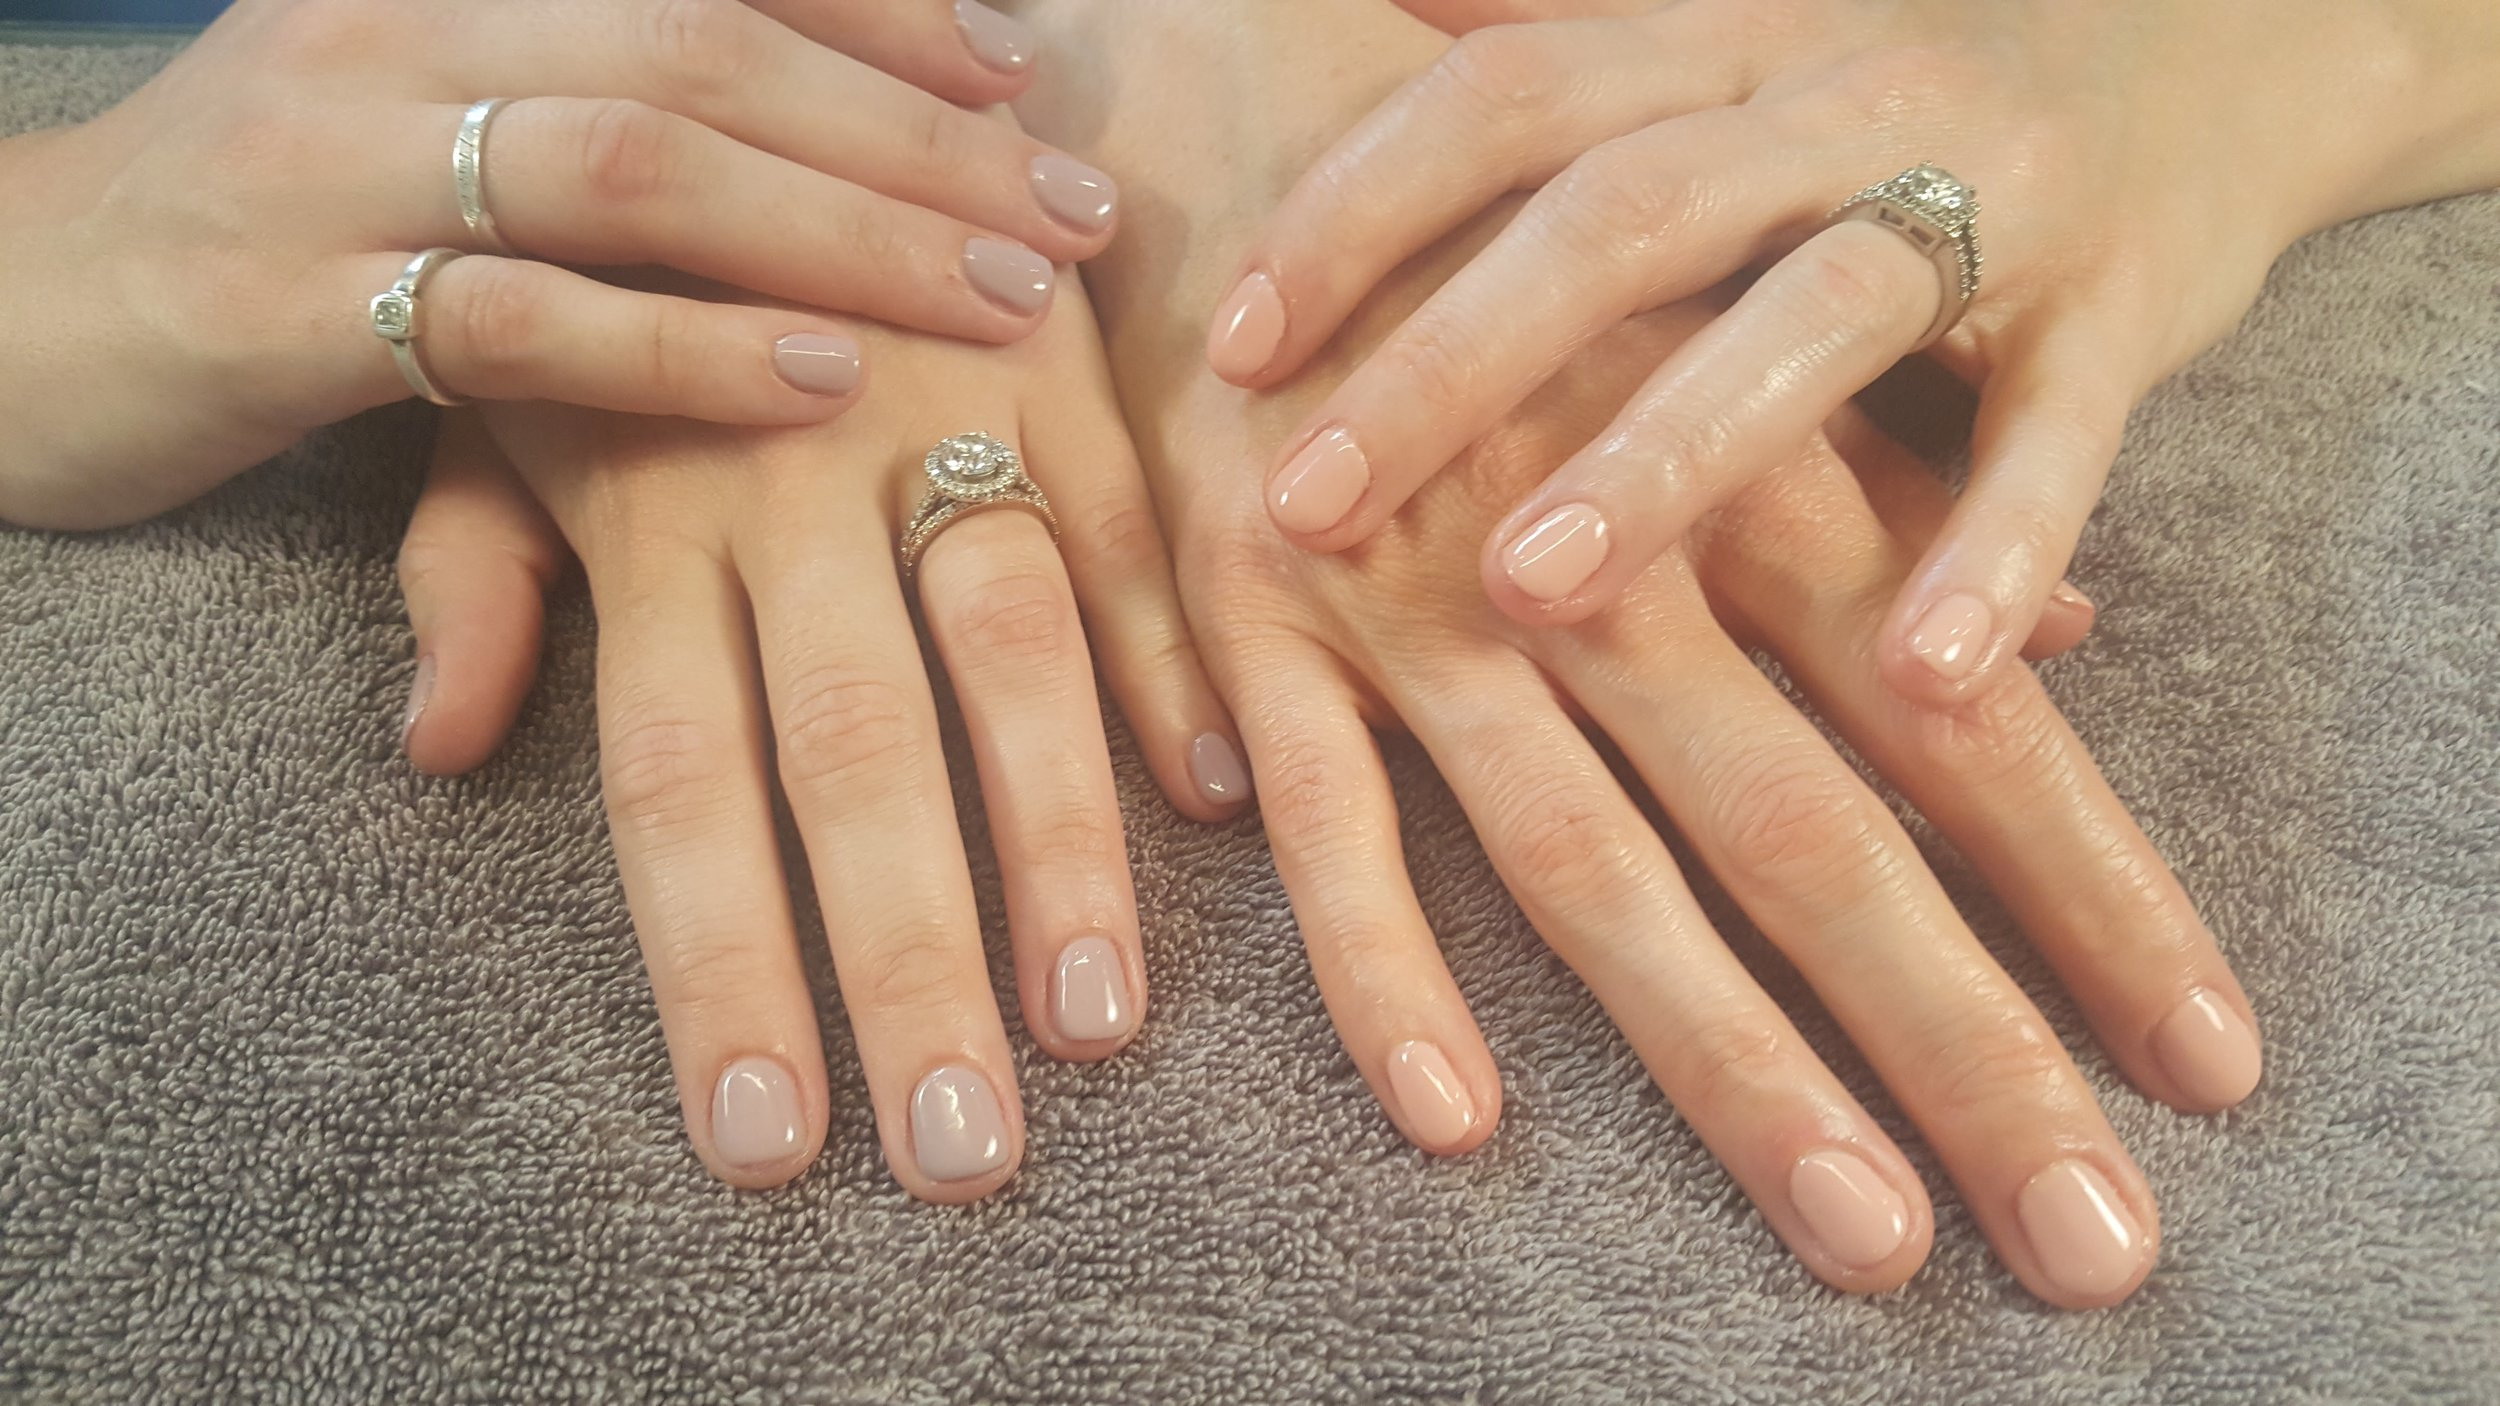 Wedding Nails, Brides, Dazzle Dry, Bridal Nails, Bride, Mani, Wedding Mani, Perfect Pink Nails, Nude Mani, Pastel Pink, Perfect Mani, Best in Bend, Oregon